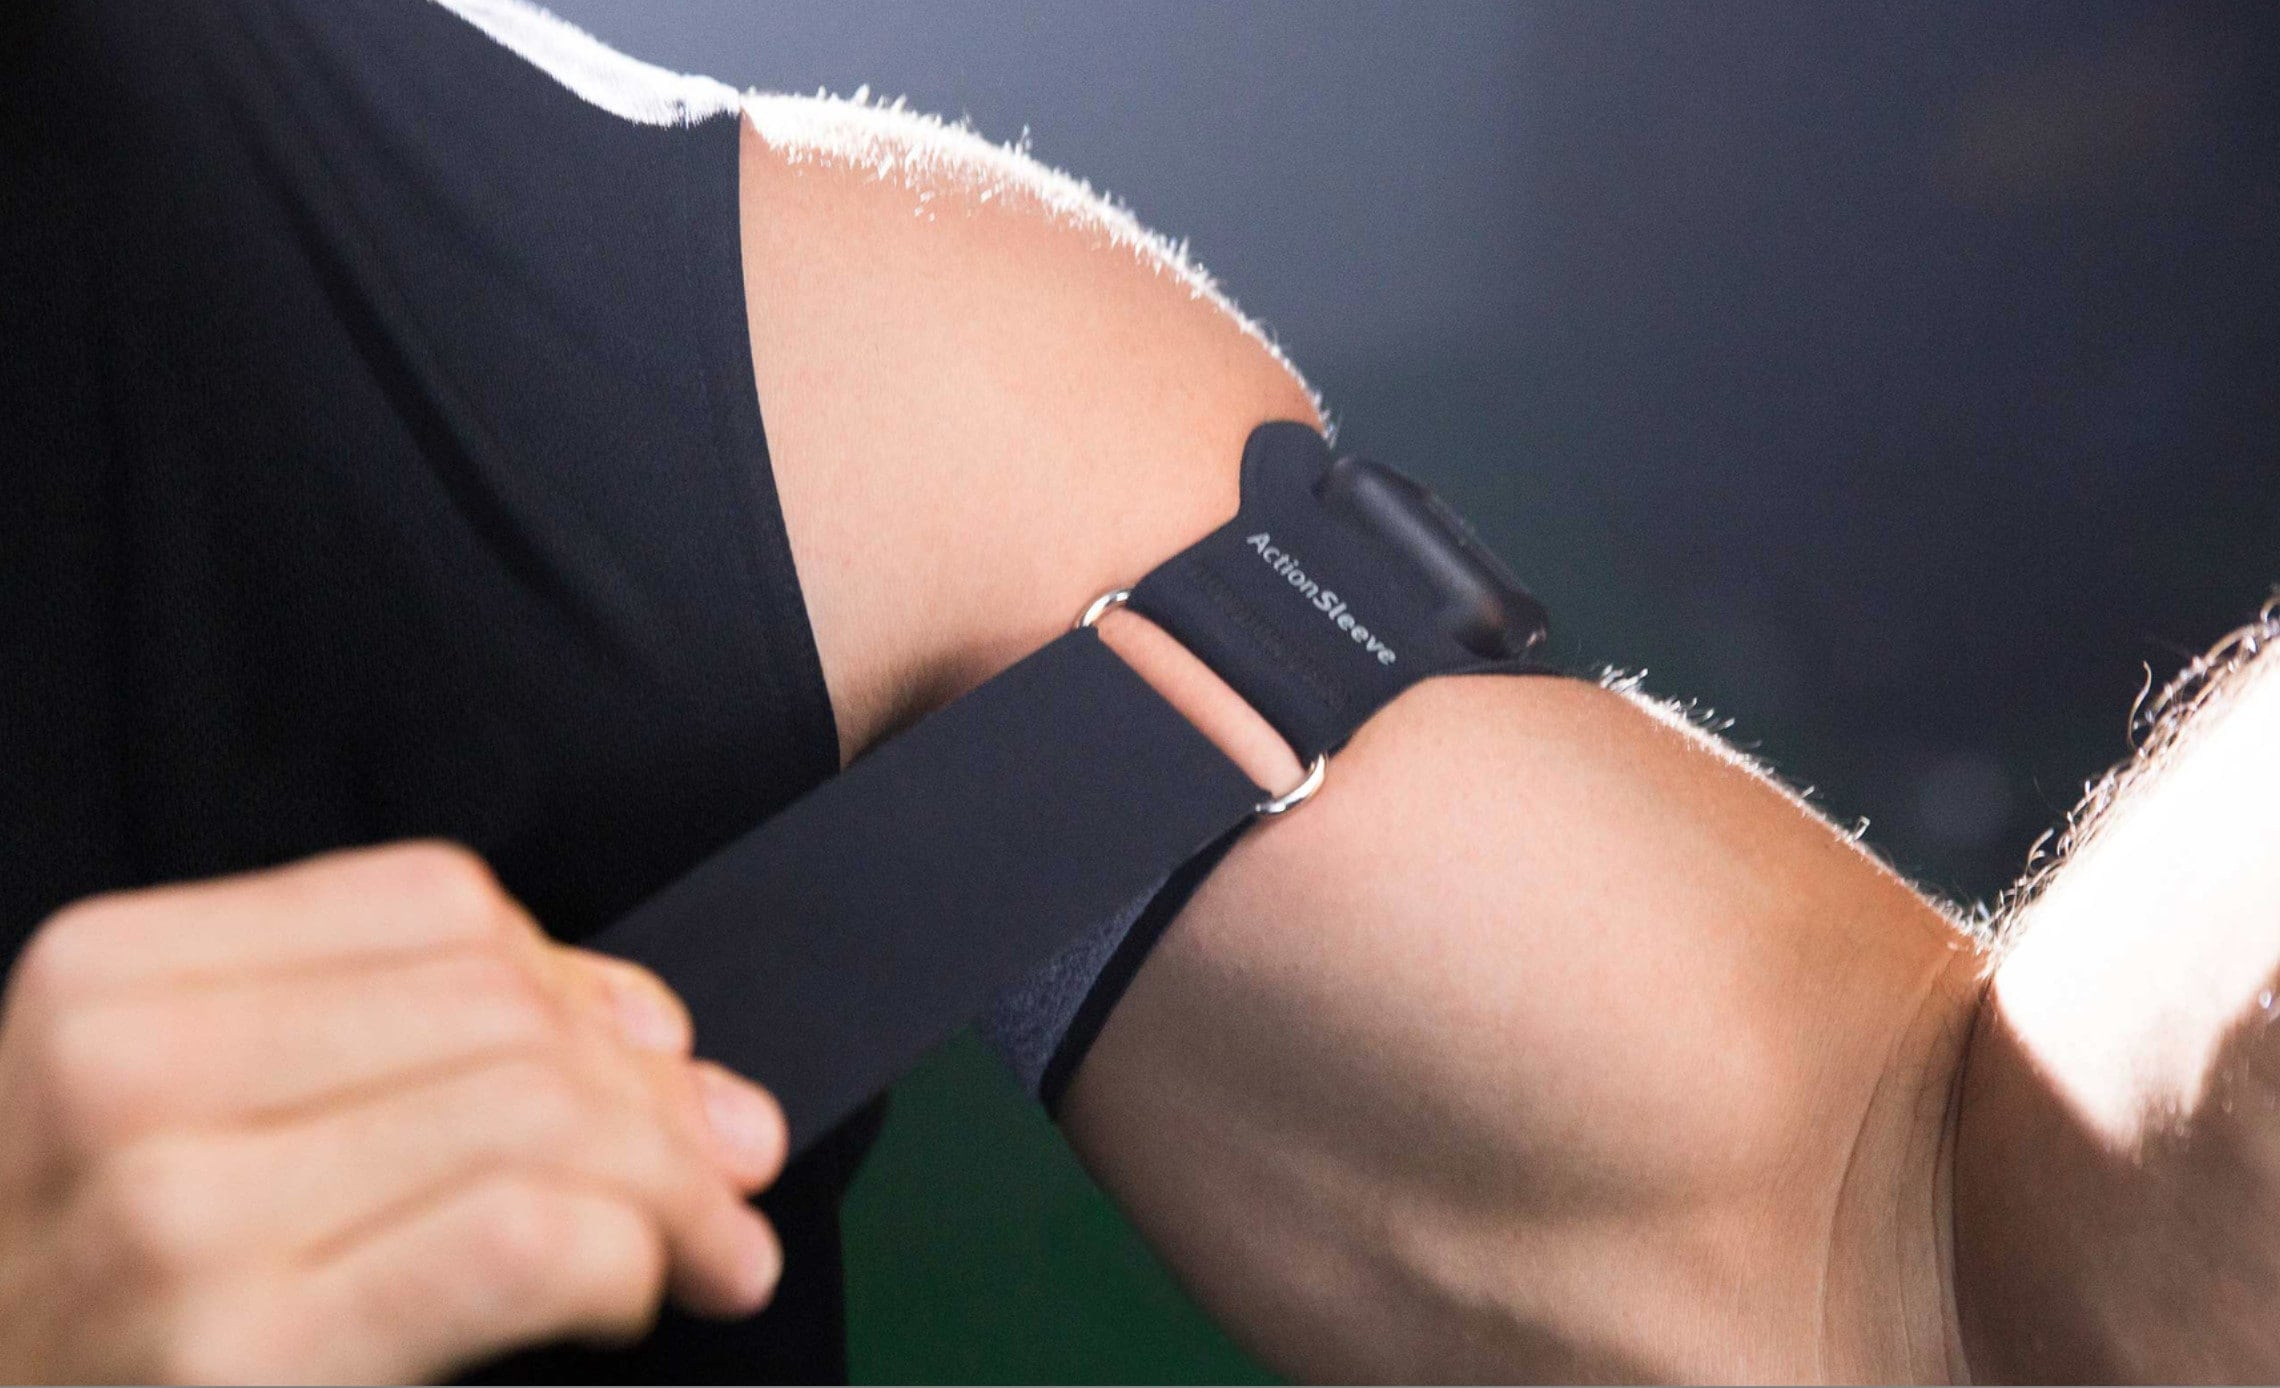 ActionSleeve straps your Apple Watch to your upper arm or bicep, and surrounds the device in rubber to protect it.